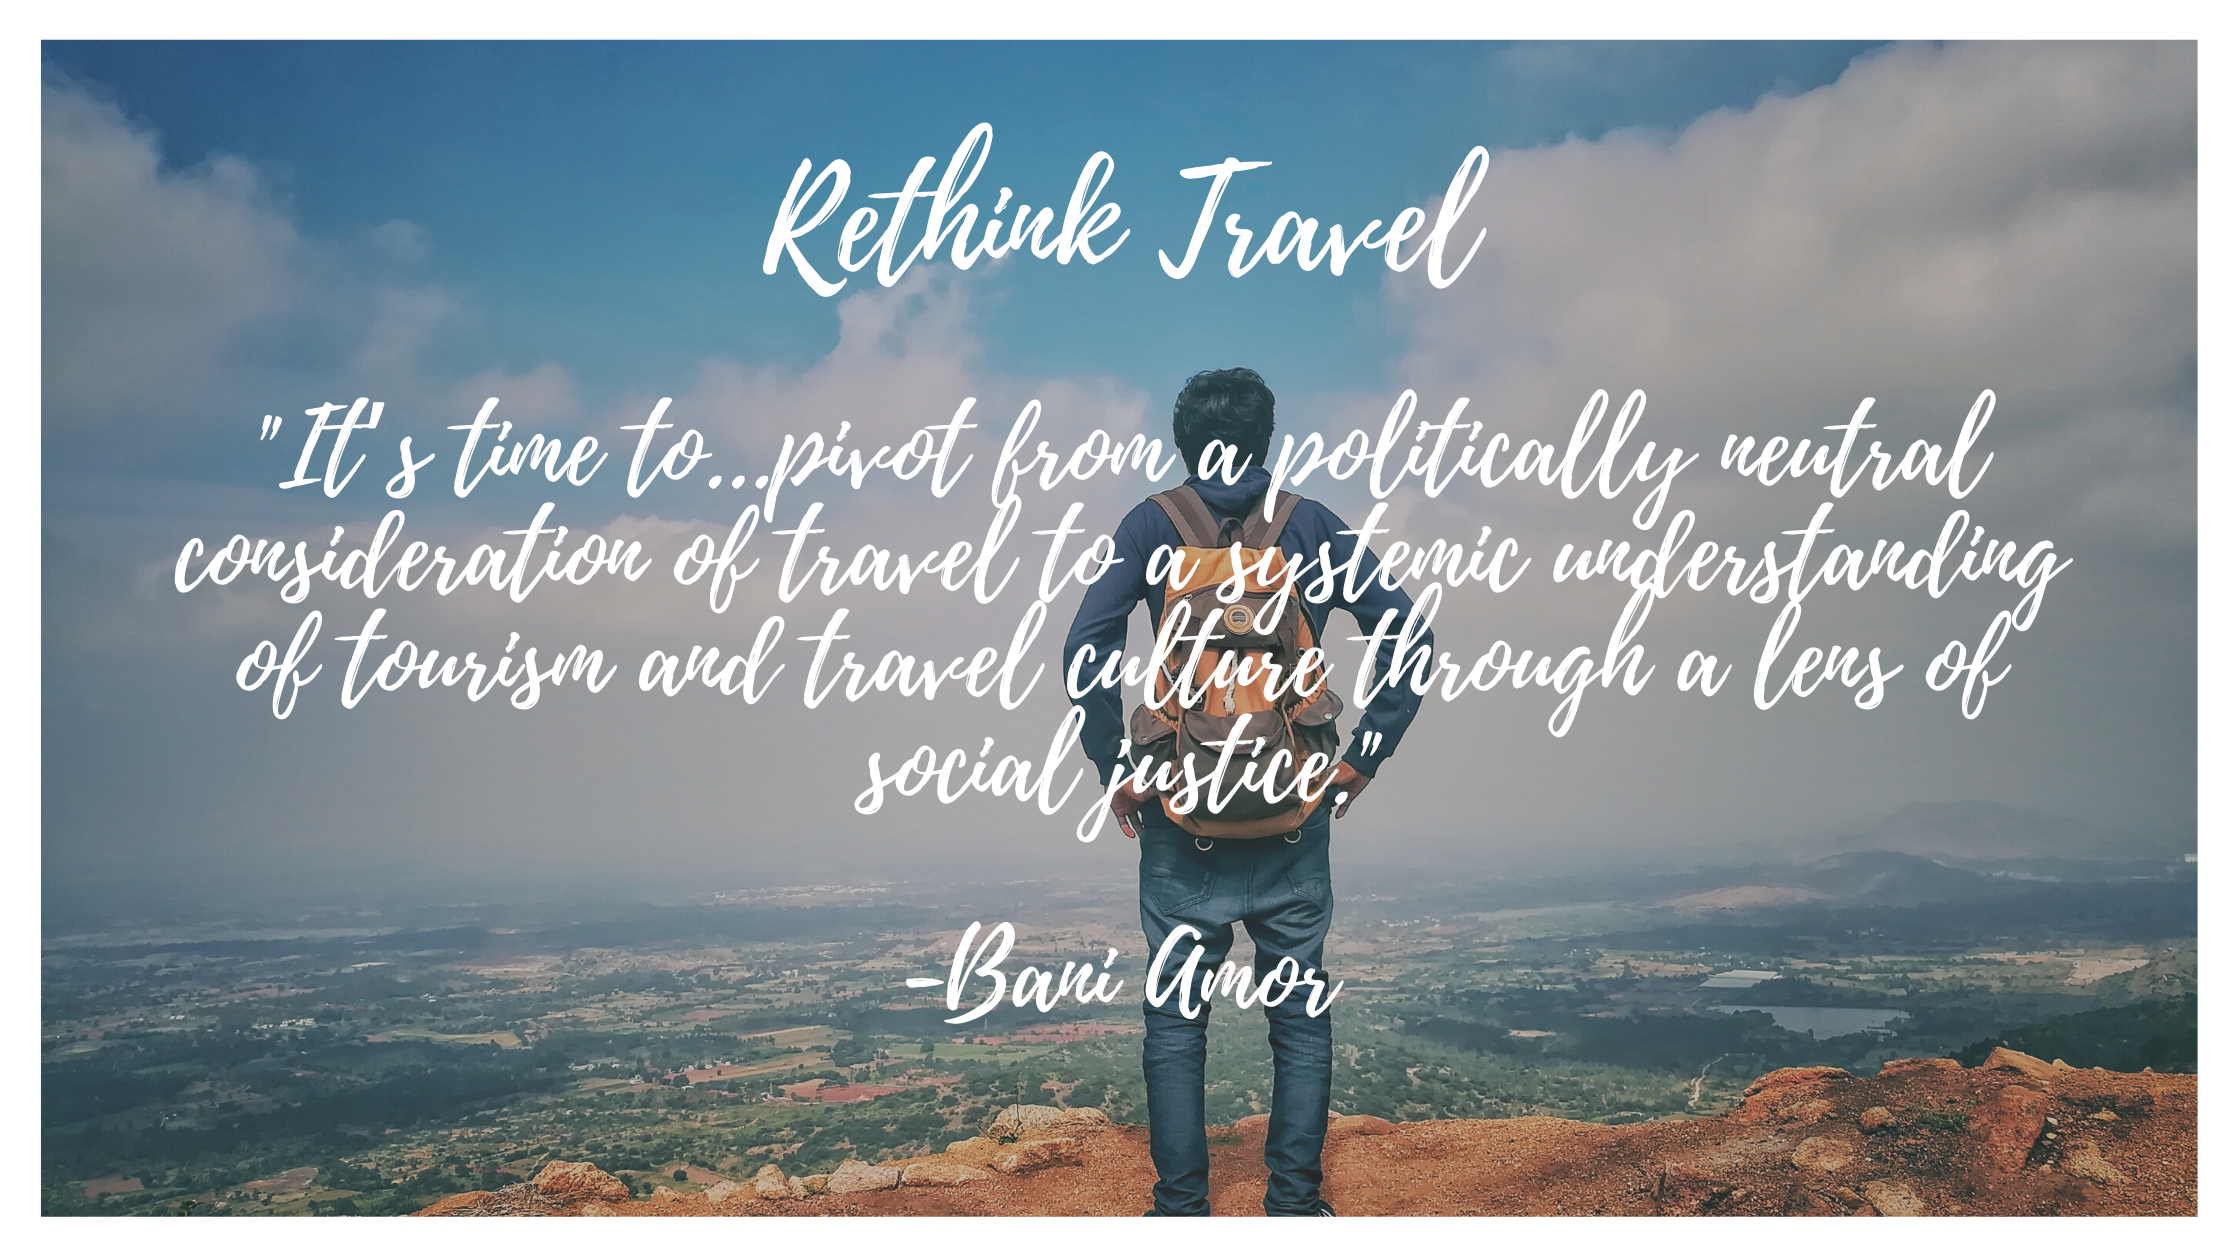 rethink travel and be a part of anti-racist traveling